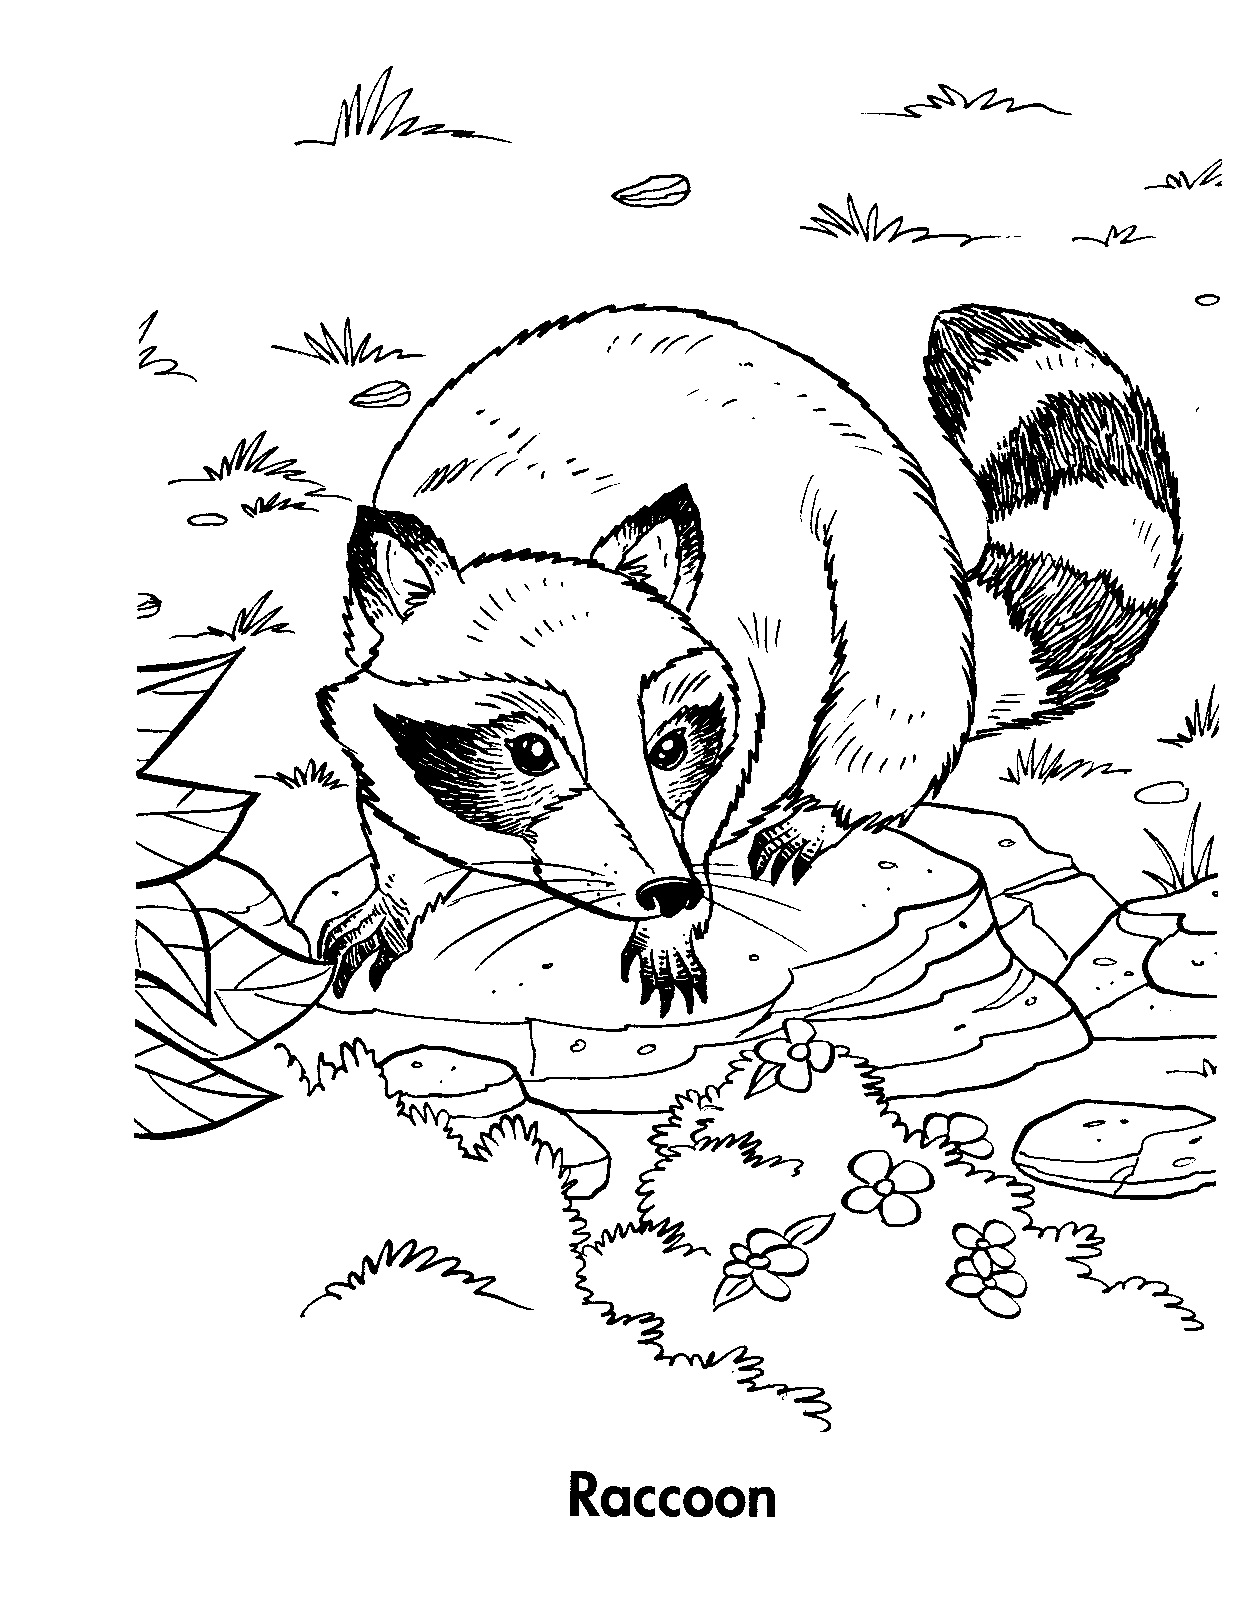 Raccoon Preschool Worksheet